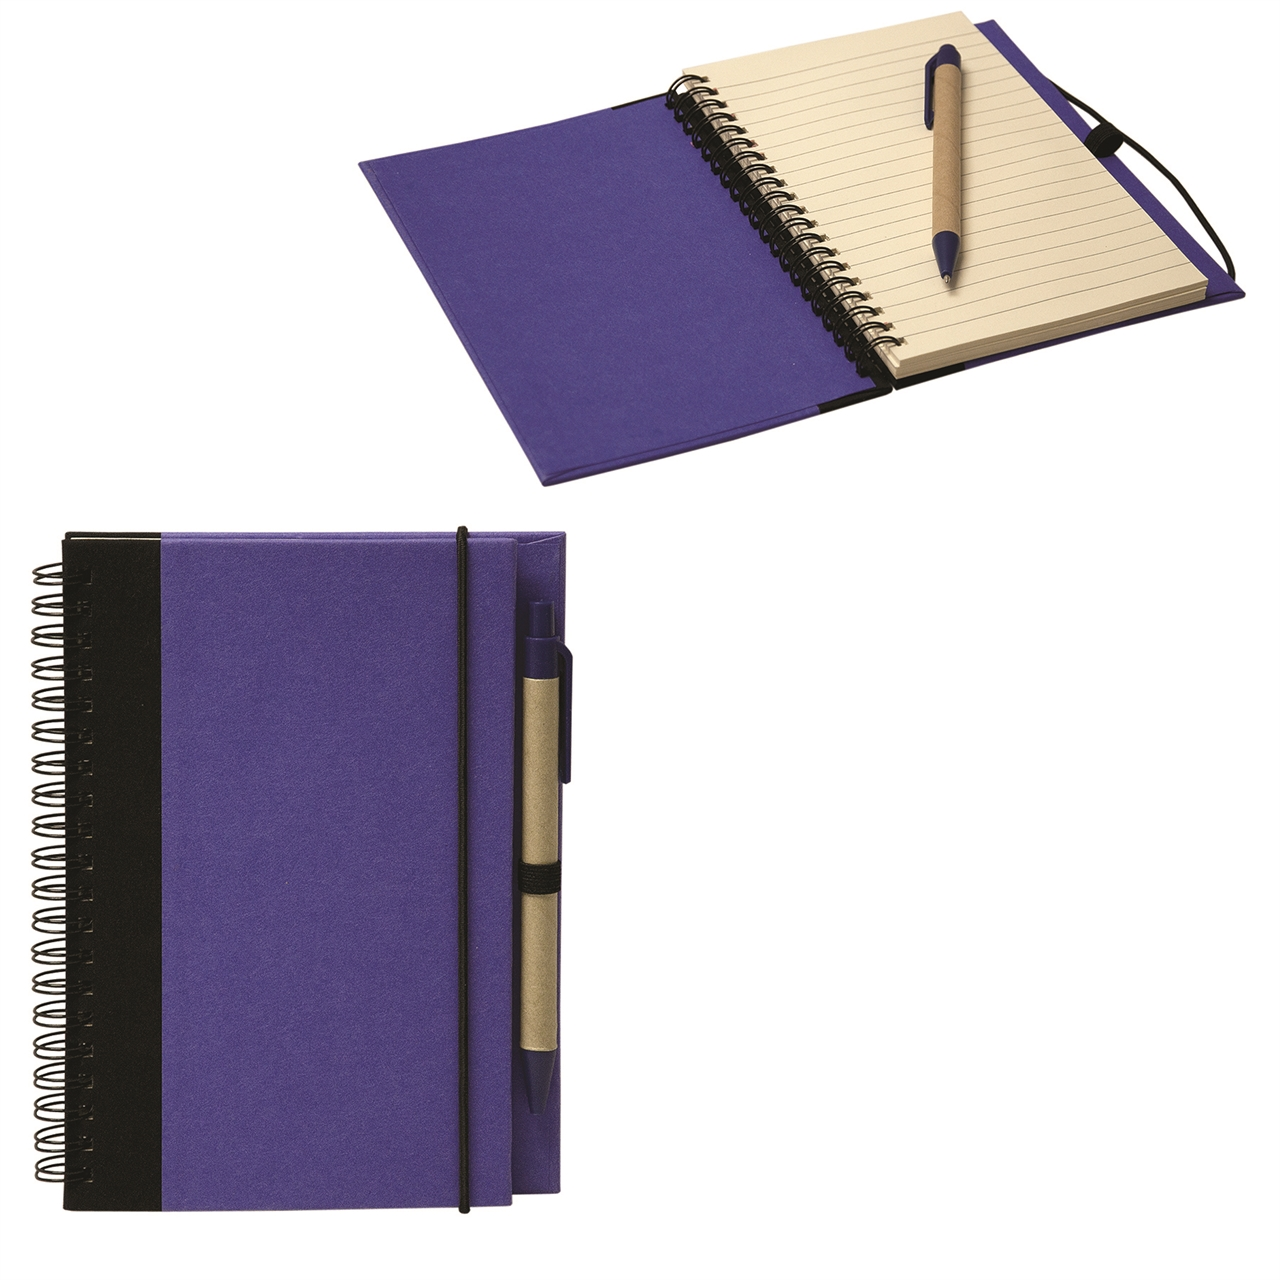 Picture of Spiral Recycled Cardboard Notebook